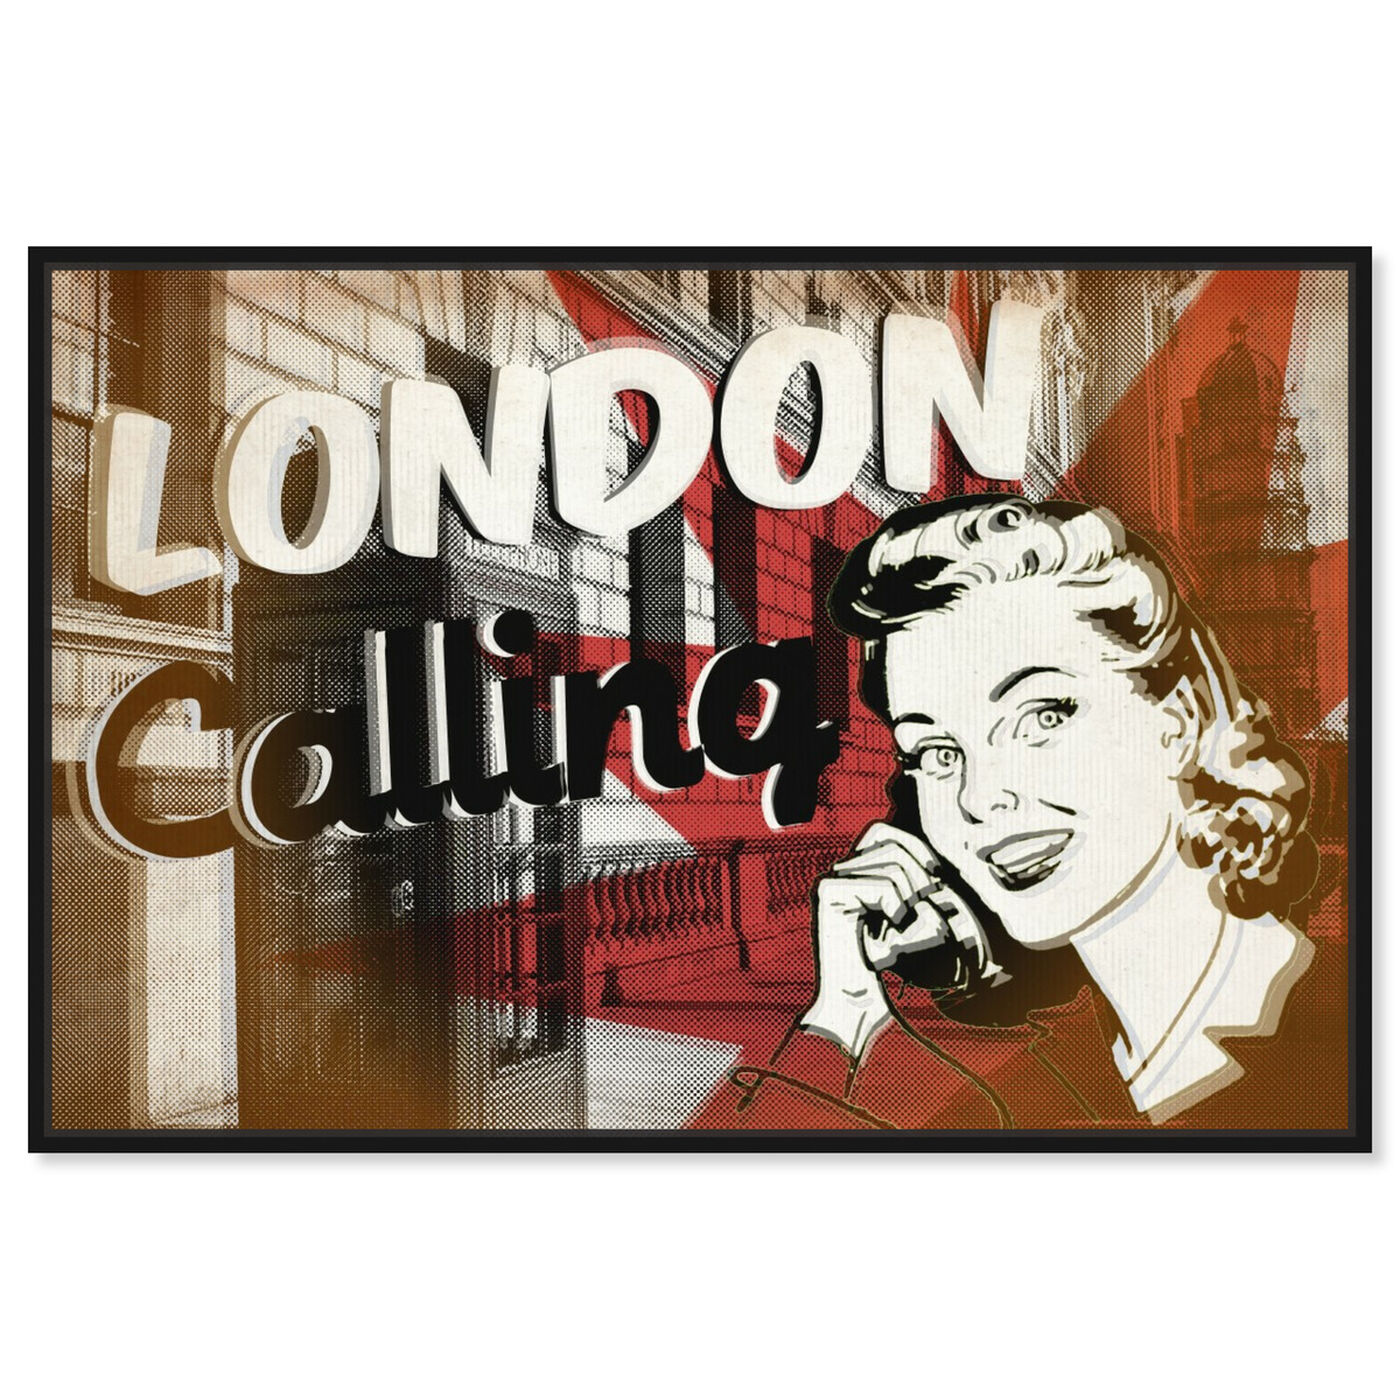 Front view of London Calling featuring advertising and posters art.